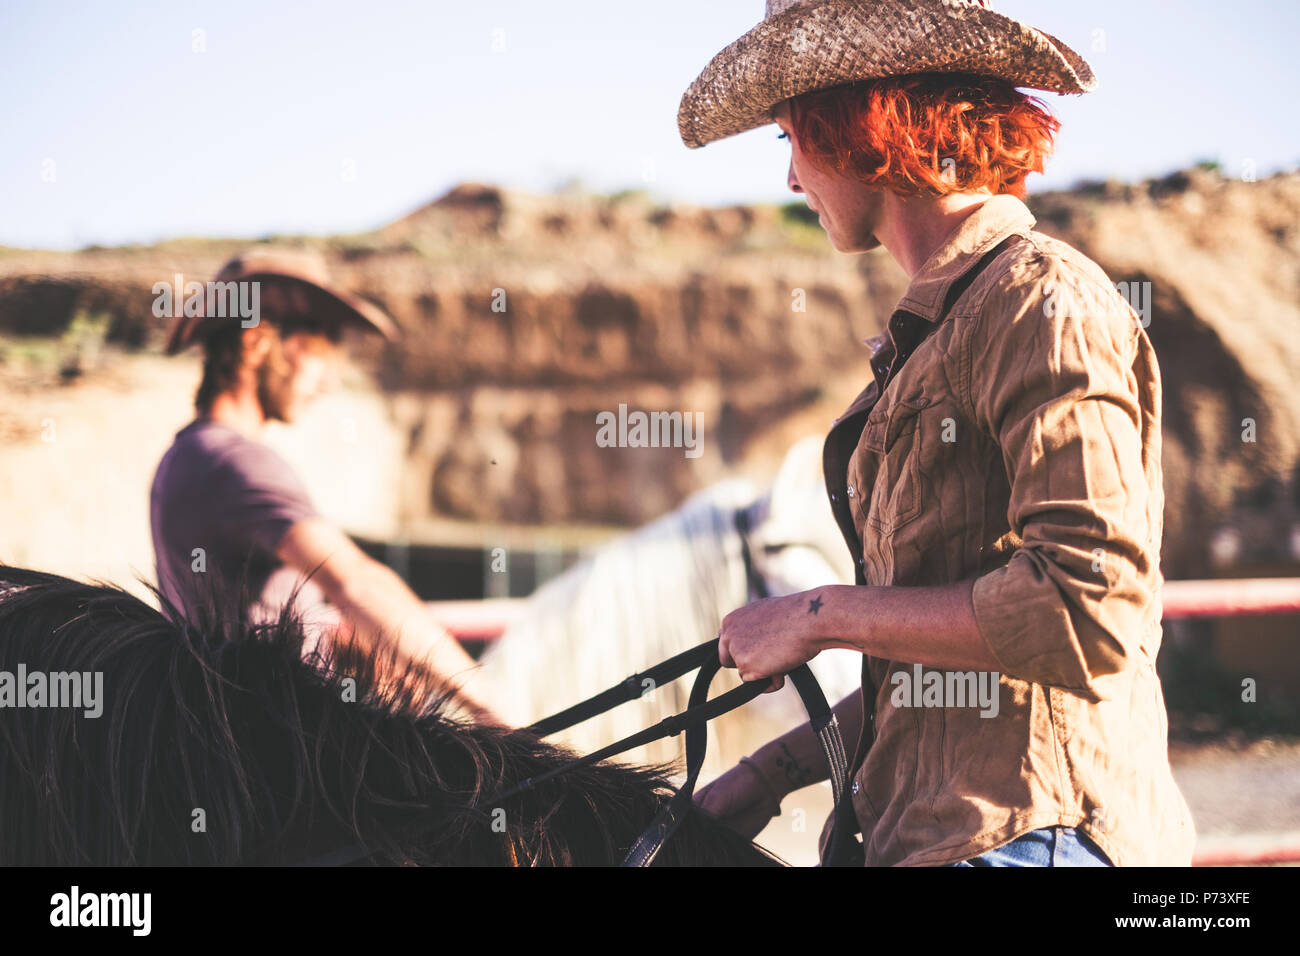 couple of modern cowboy ride together. one man and one woman with two horses. warm filter image for alternative lifestyle and work or outdoor activity - Stock Image